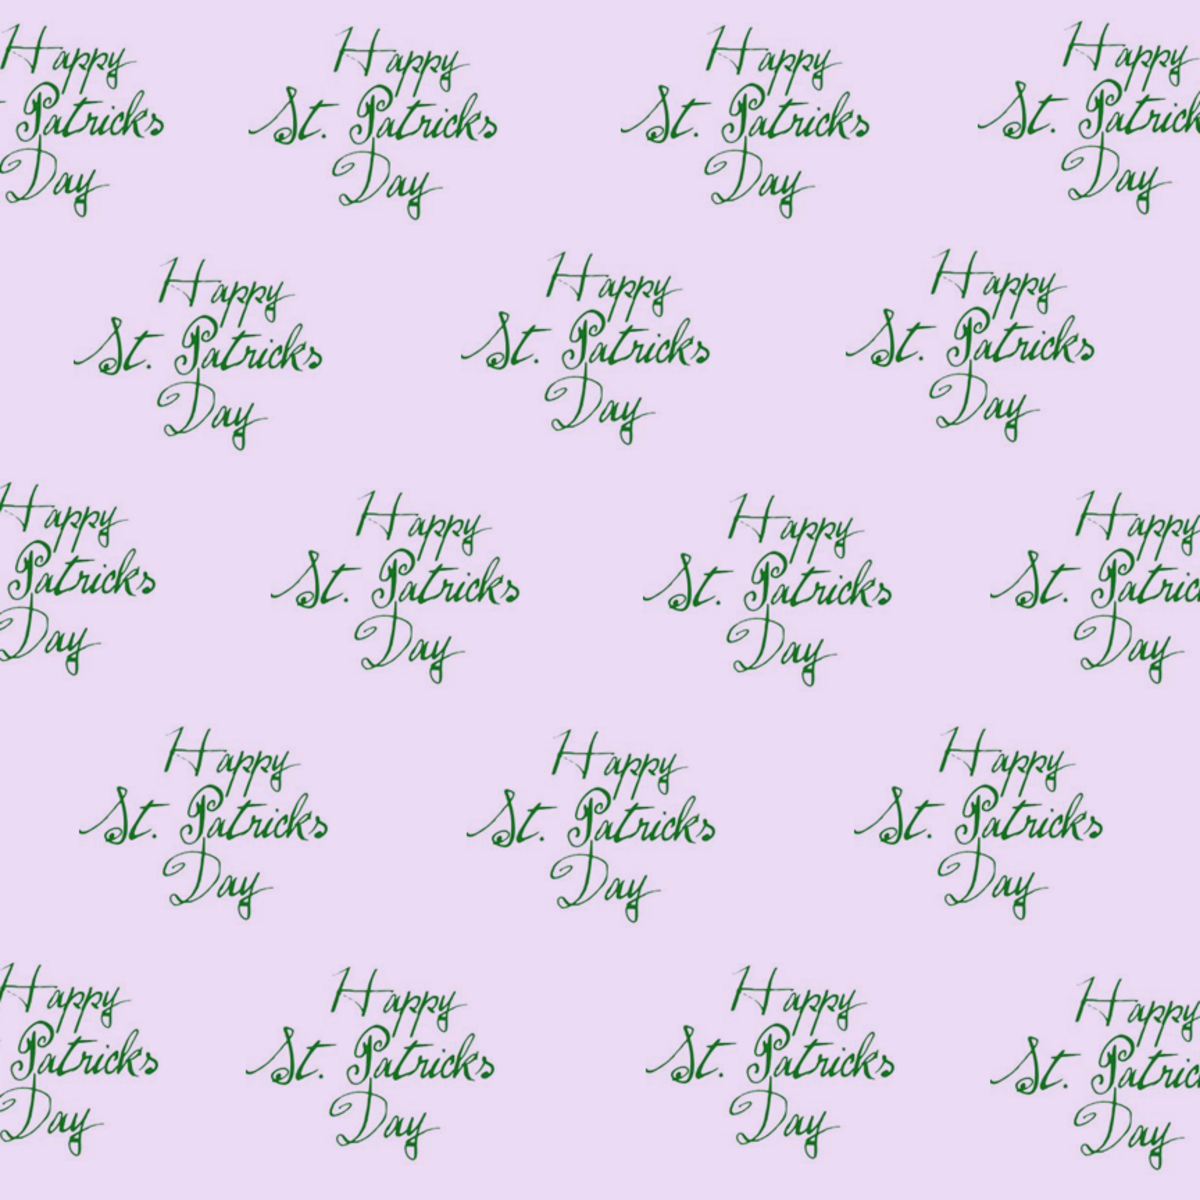 Happy St. Patrick's Day scrapbooking paper: purple background